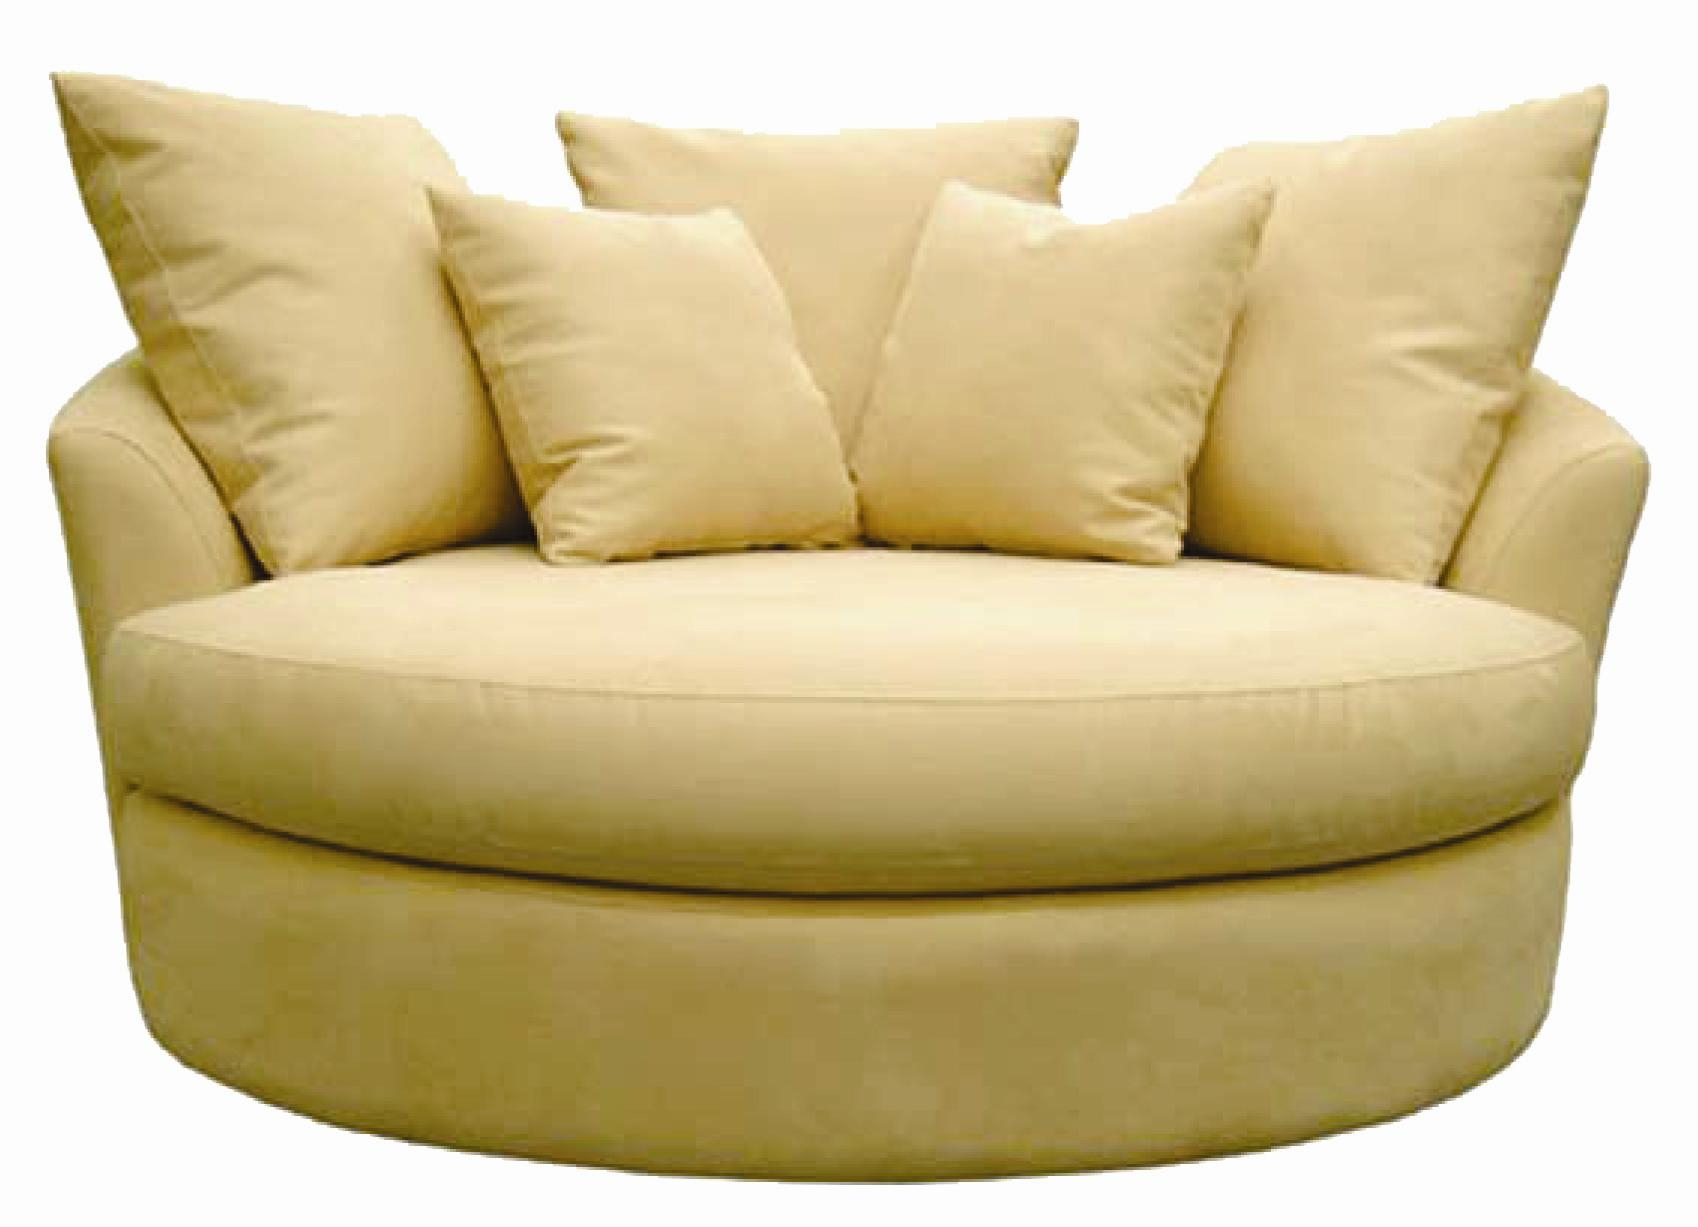 swivel chair disassembly cover rentals houston tx 15 ideas of round sofa chairs